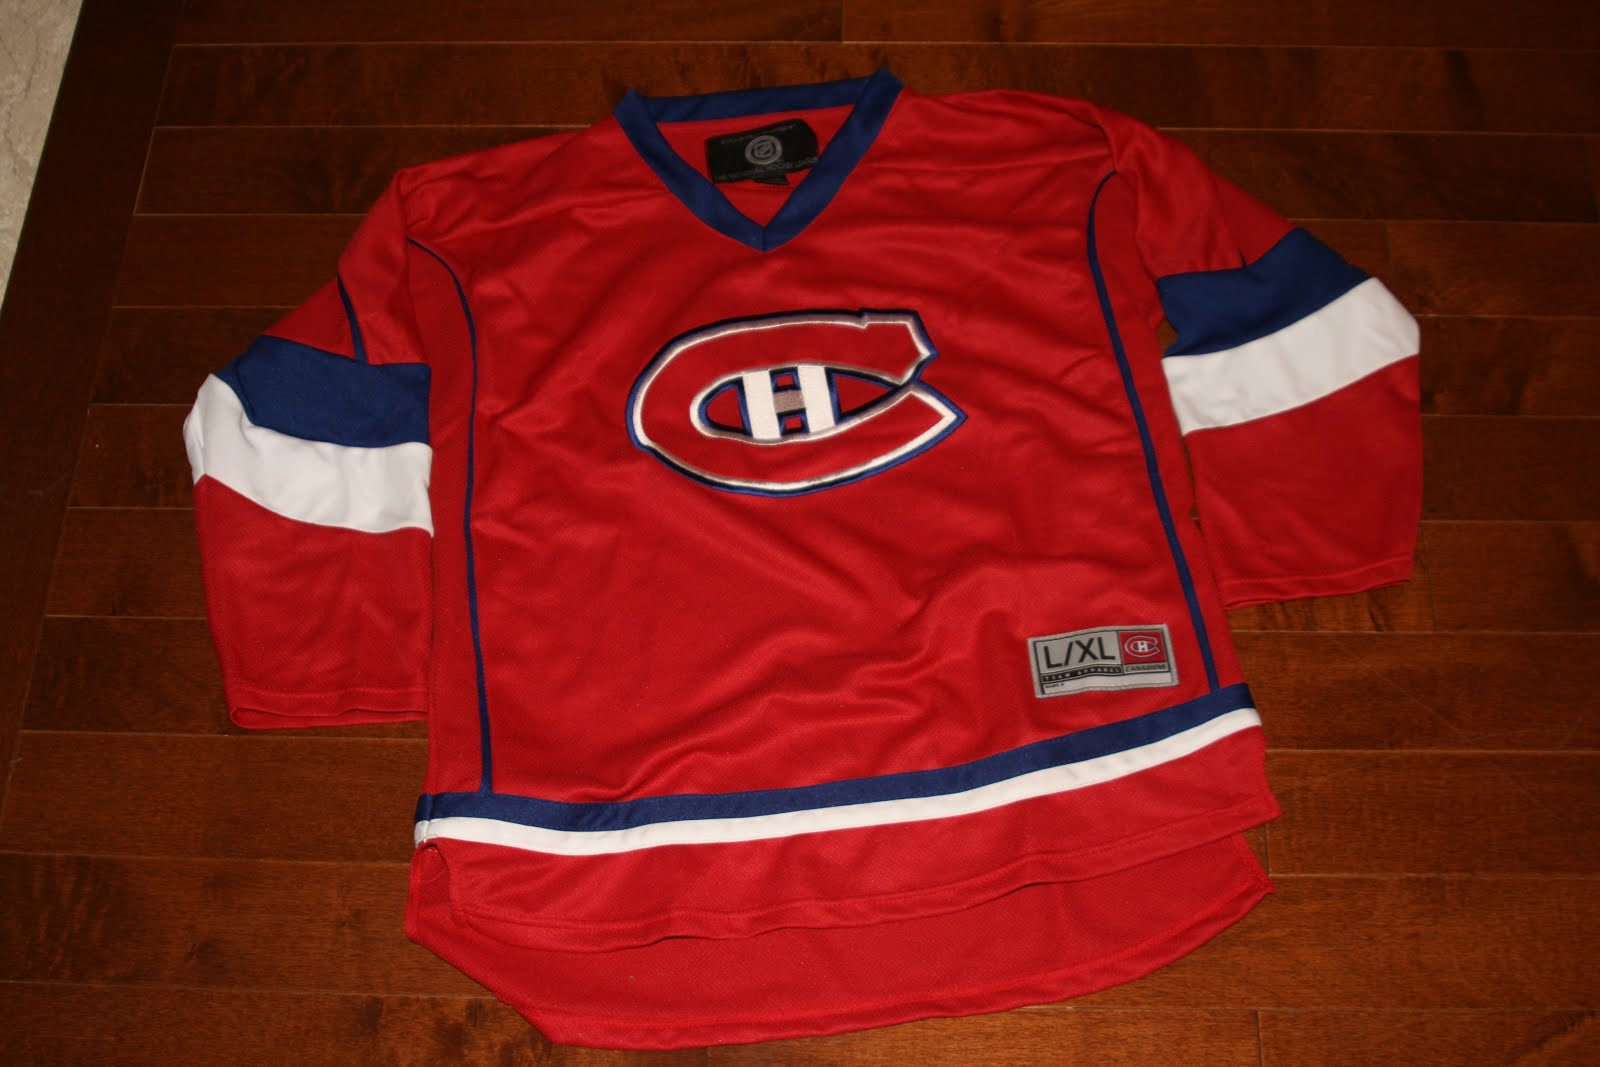 d49ec4823 MONTREAL CANADIENS HABS NHL HOCKEY JERSEY MENS LARGE XL OFFICIAL LICENSED  HOT!!